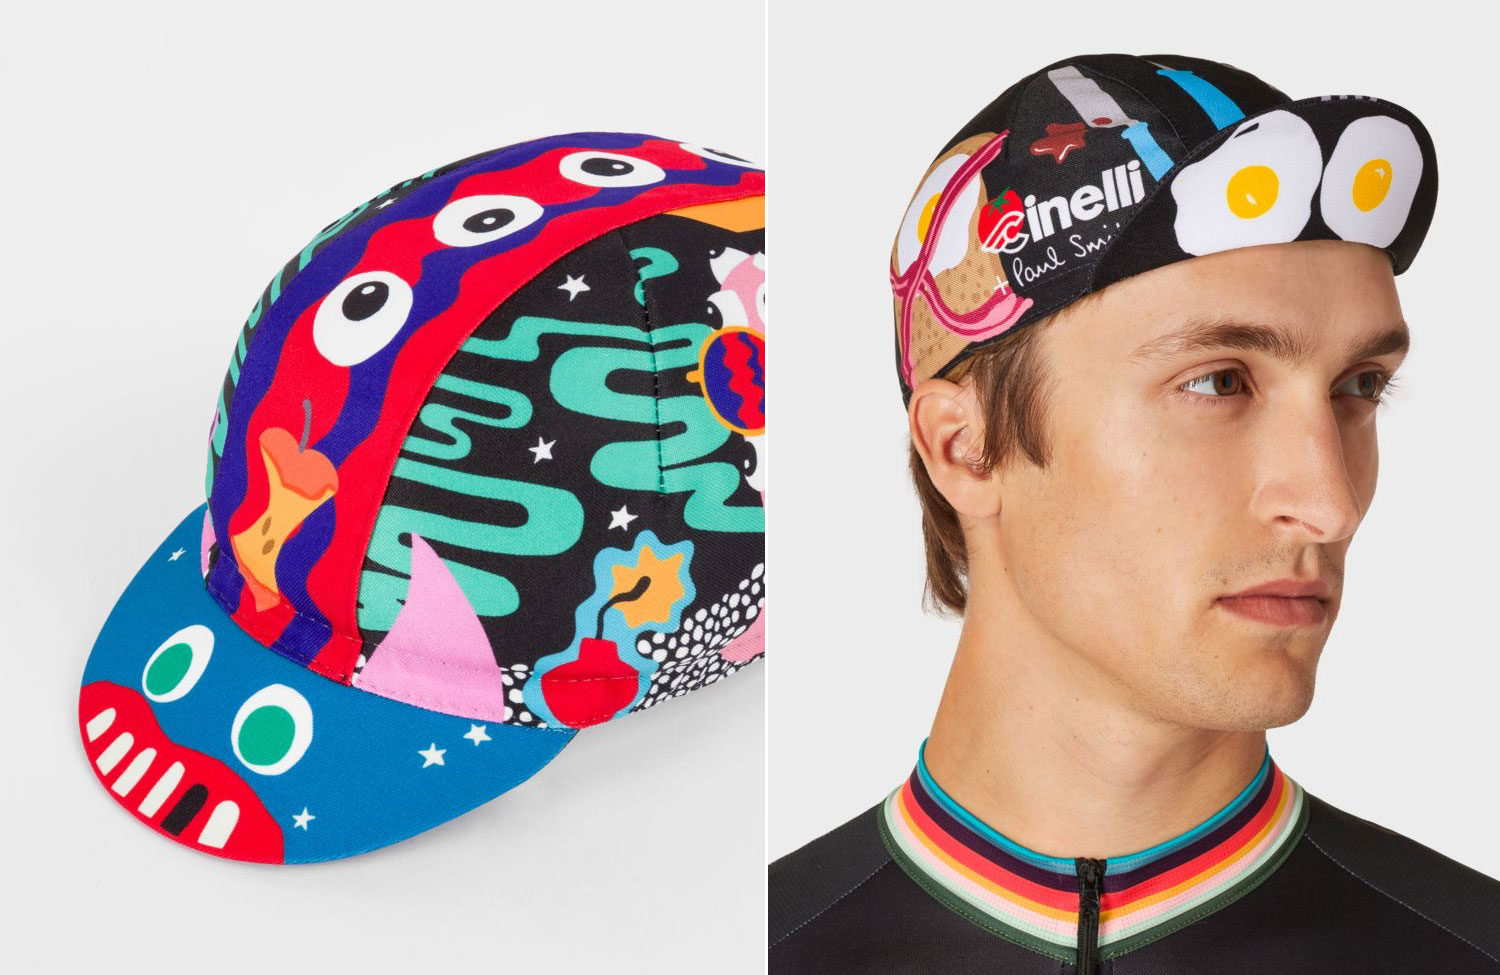 Special Edition Cycling Caps From Paul Smith Cinelli Urbanbike News